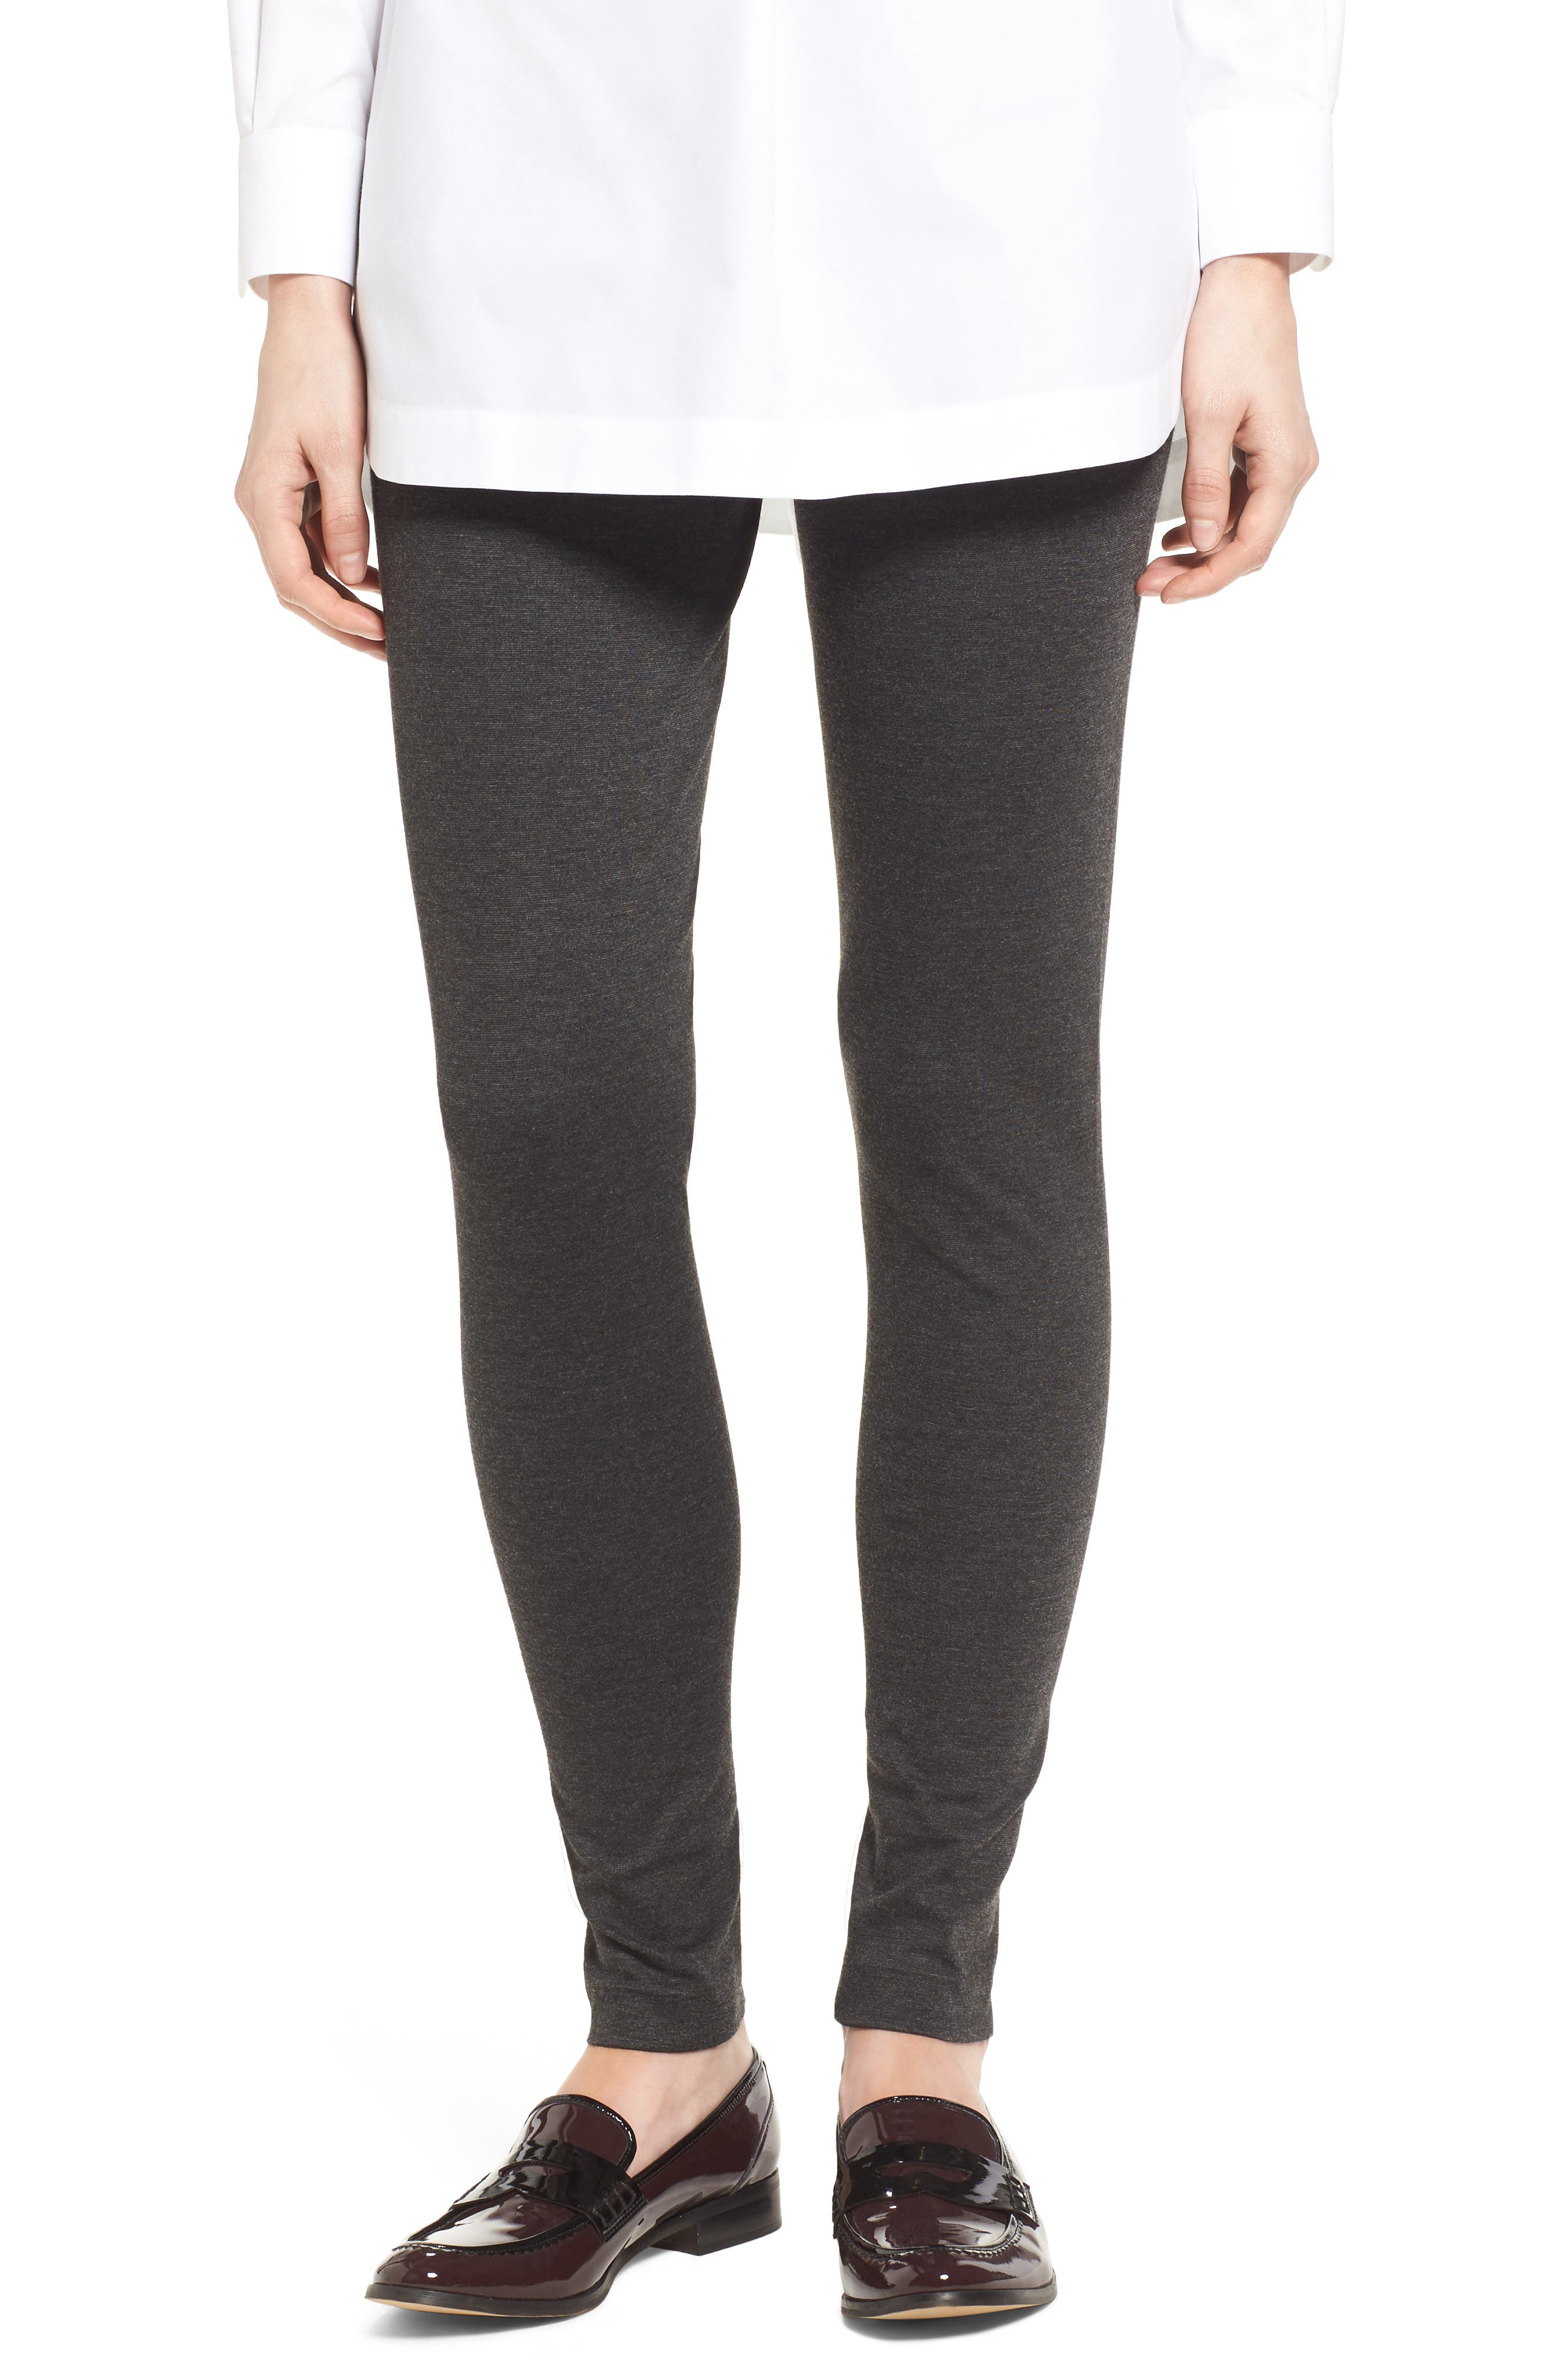 Alternate Image 1 Selected - Two by Vince Camuto Seamed Back Leggings